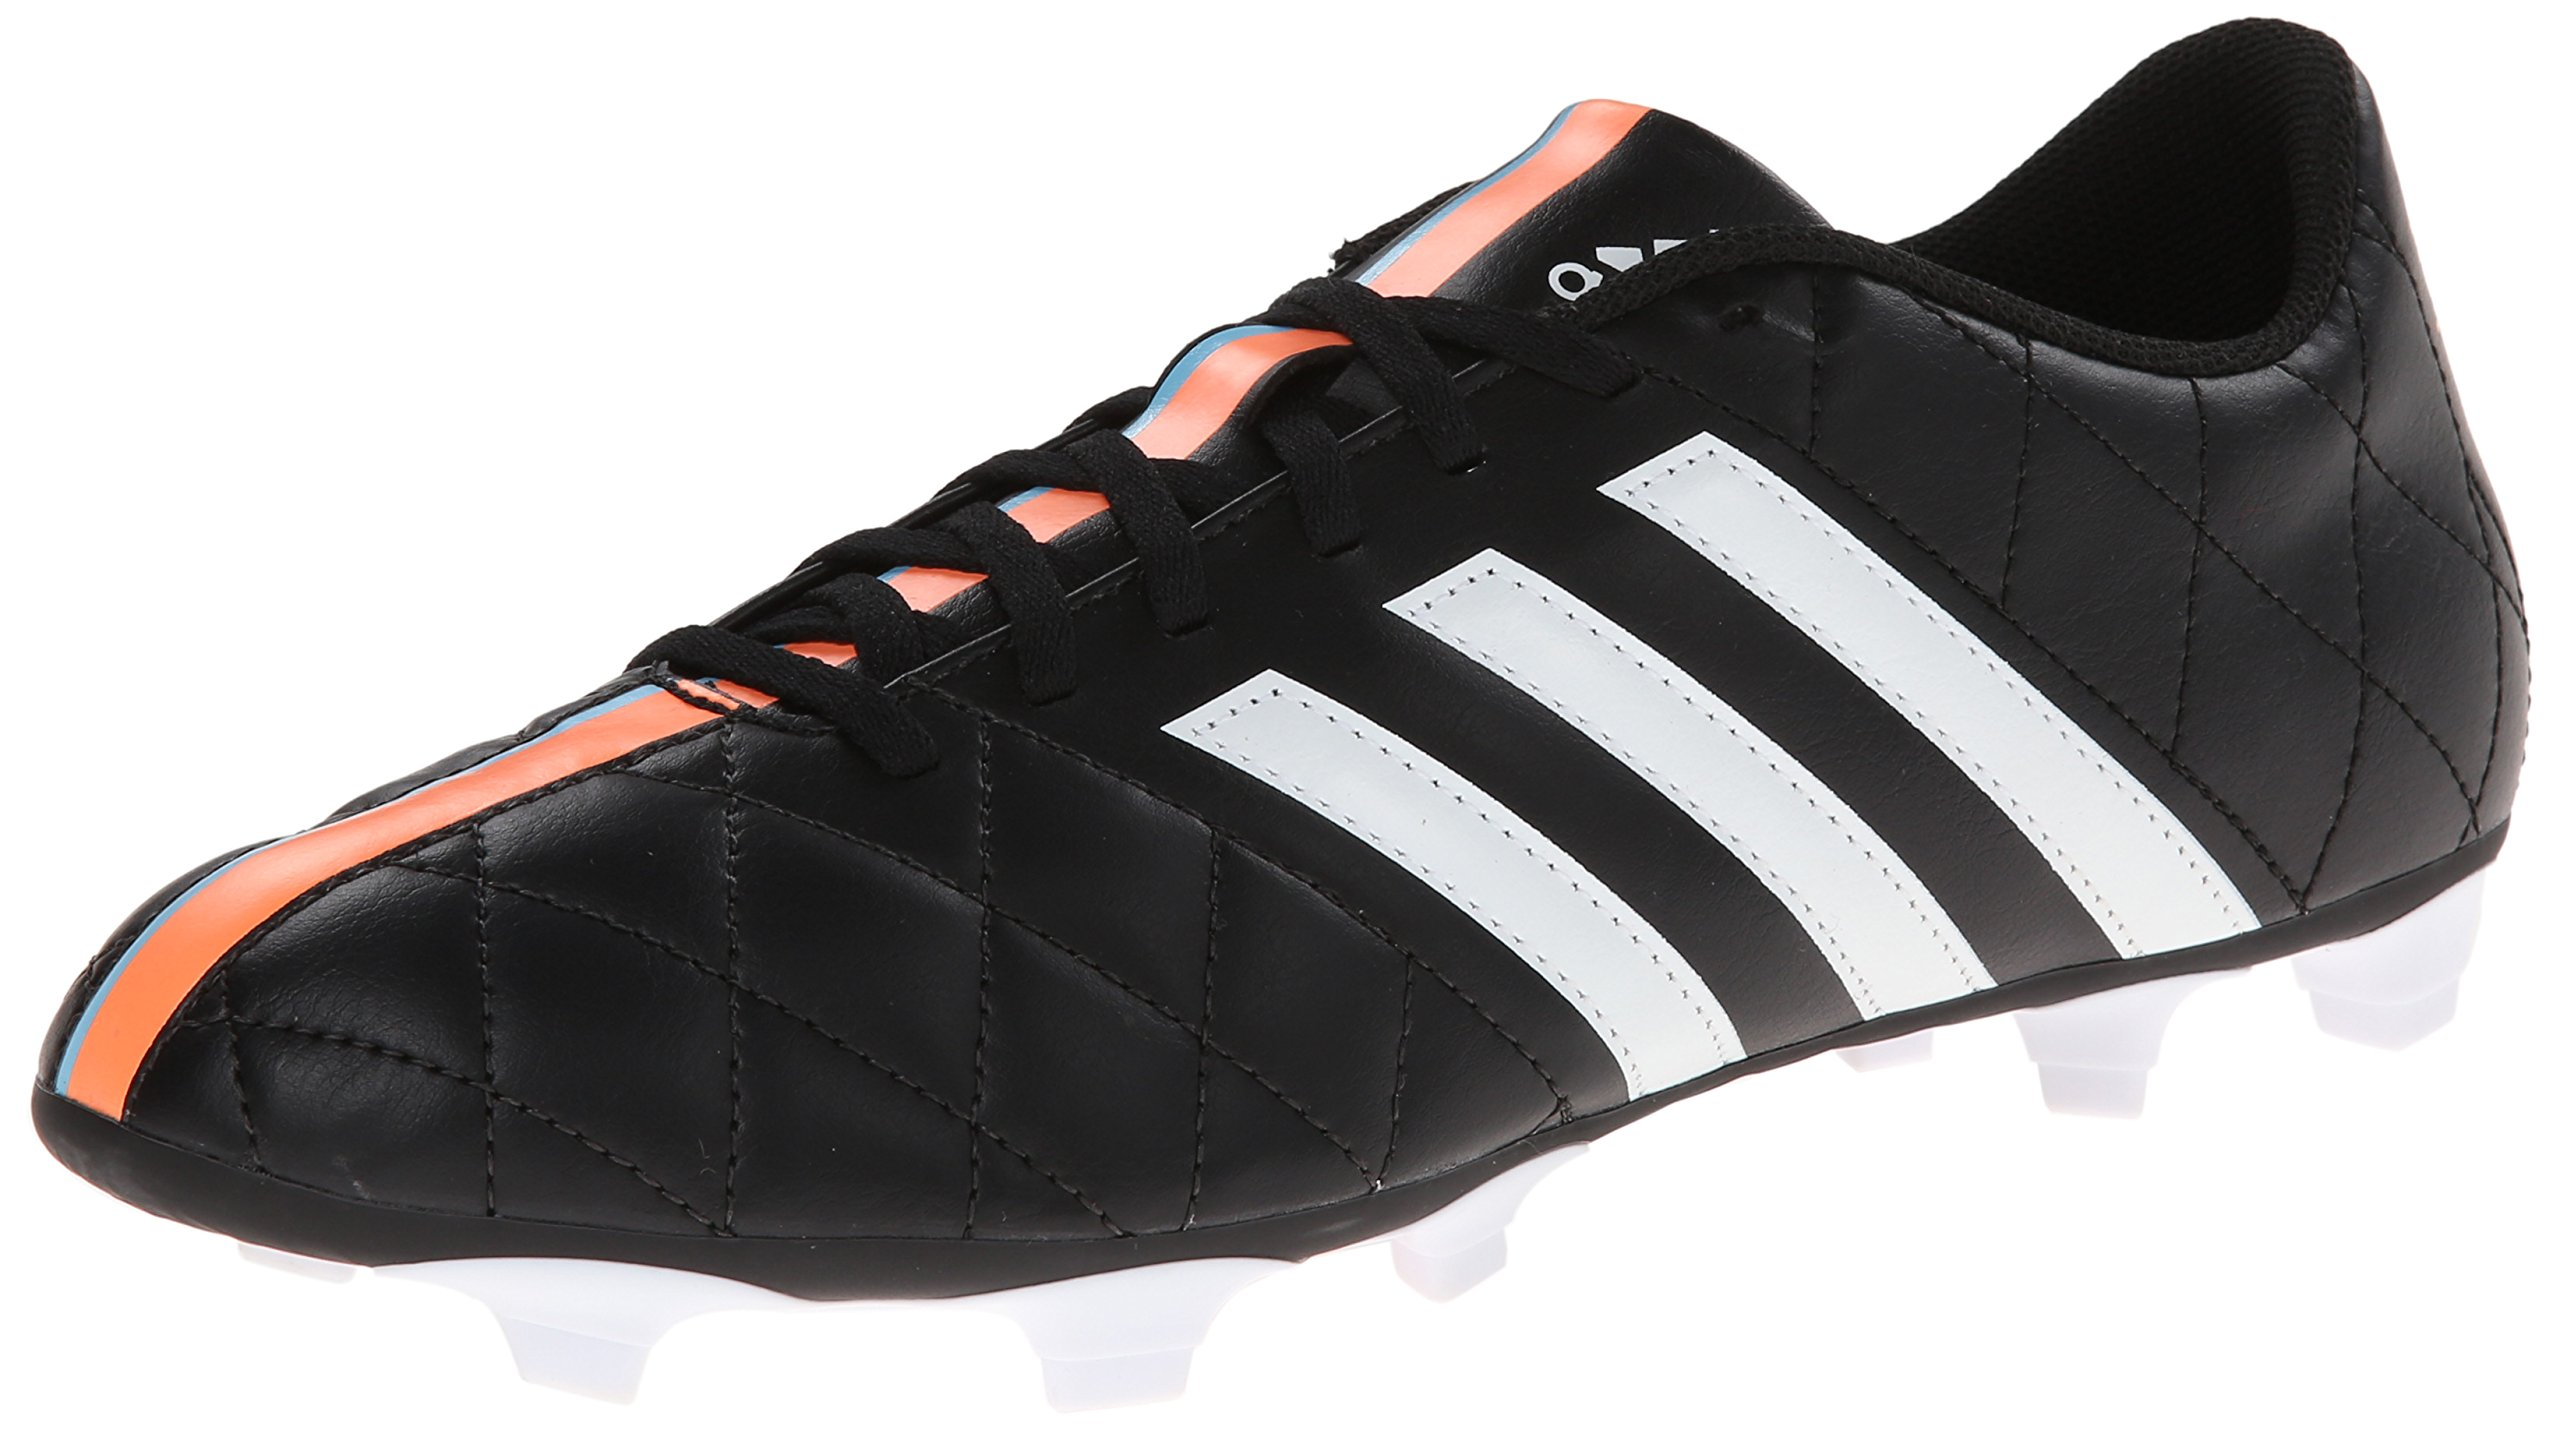 adidas Performance Men's 11Questra Firm-Ground Soccer Cleat